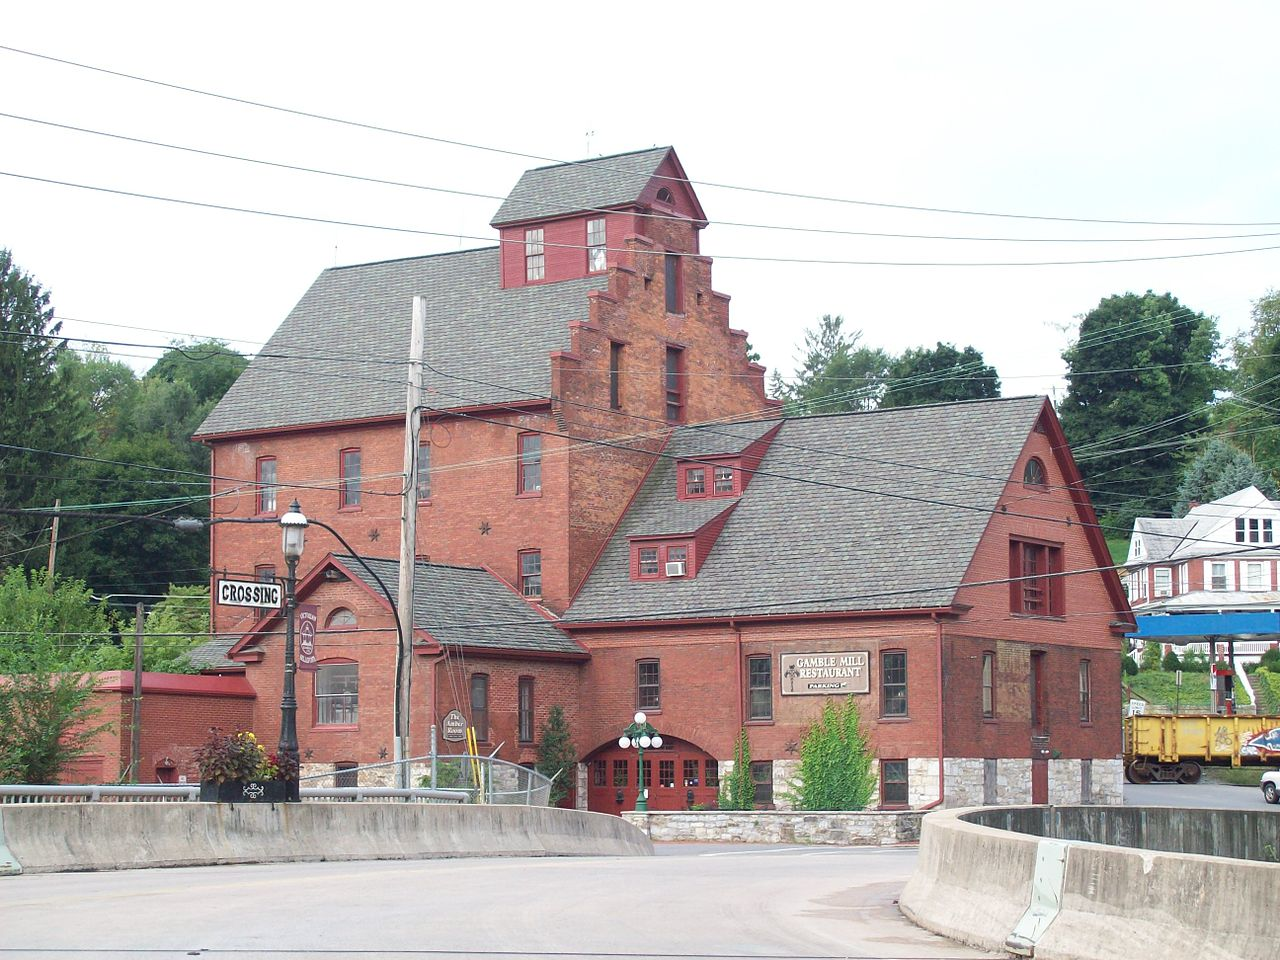 The former Gamble Mill remains an important landmark in Bellefonte.